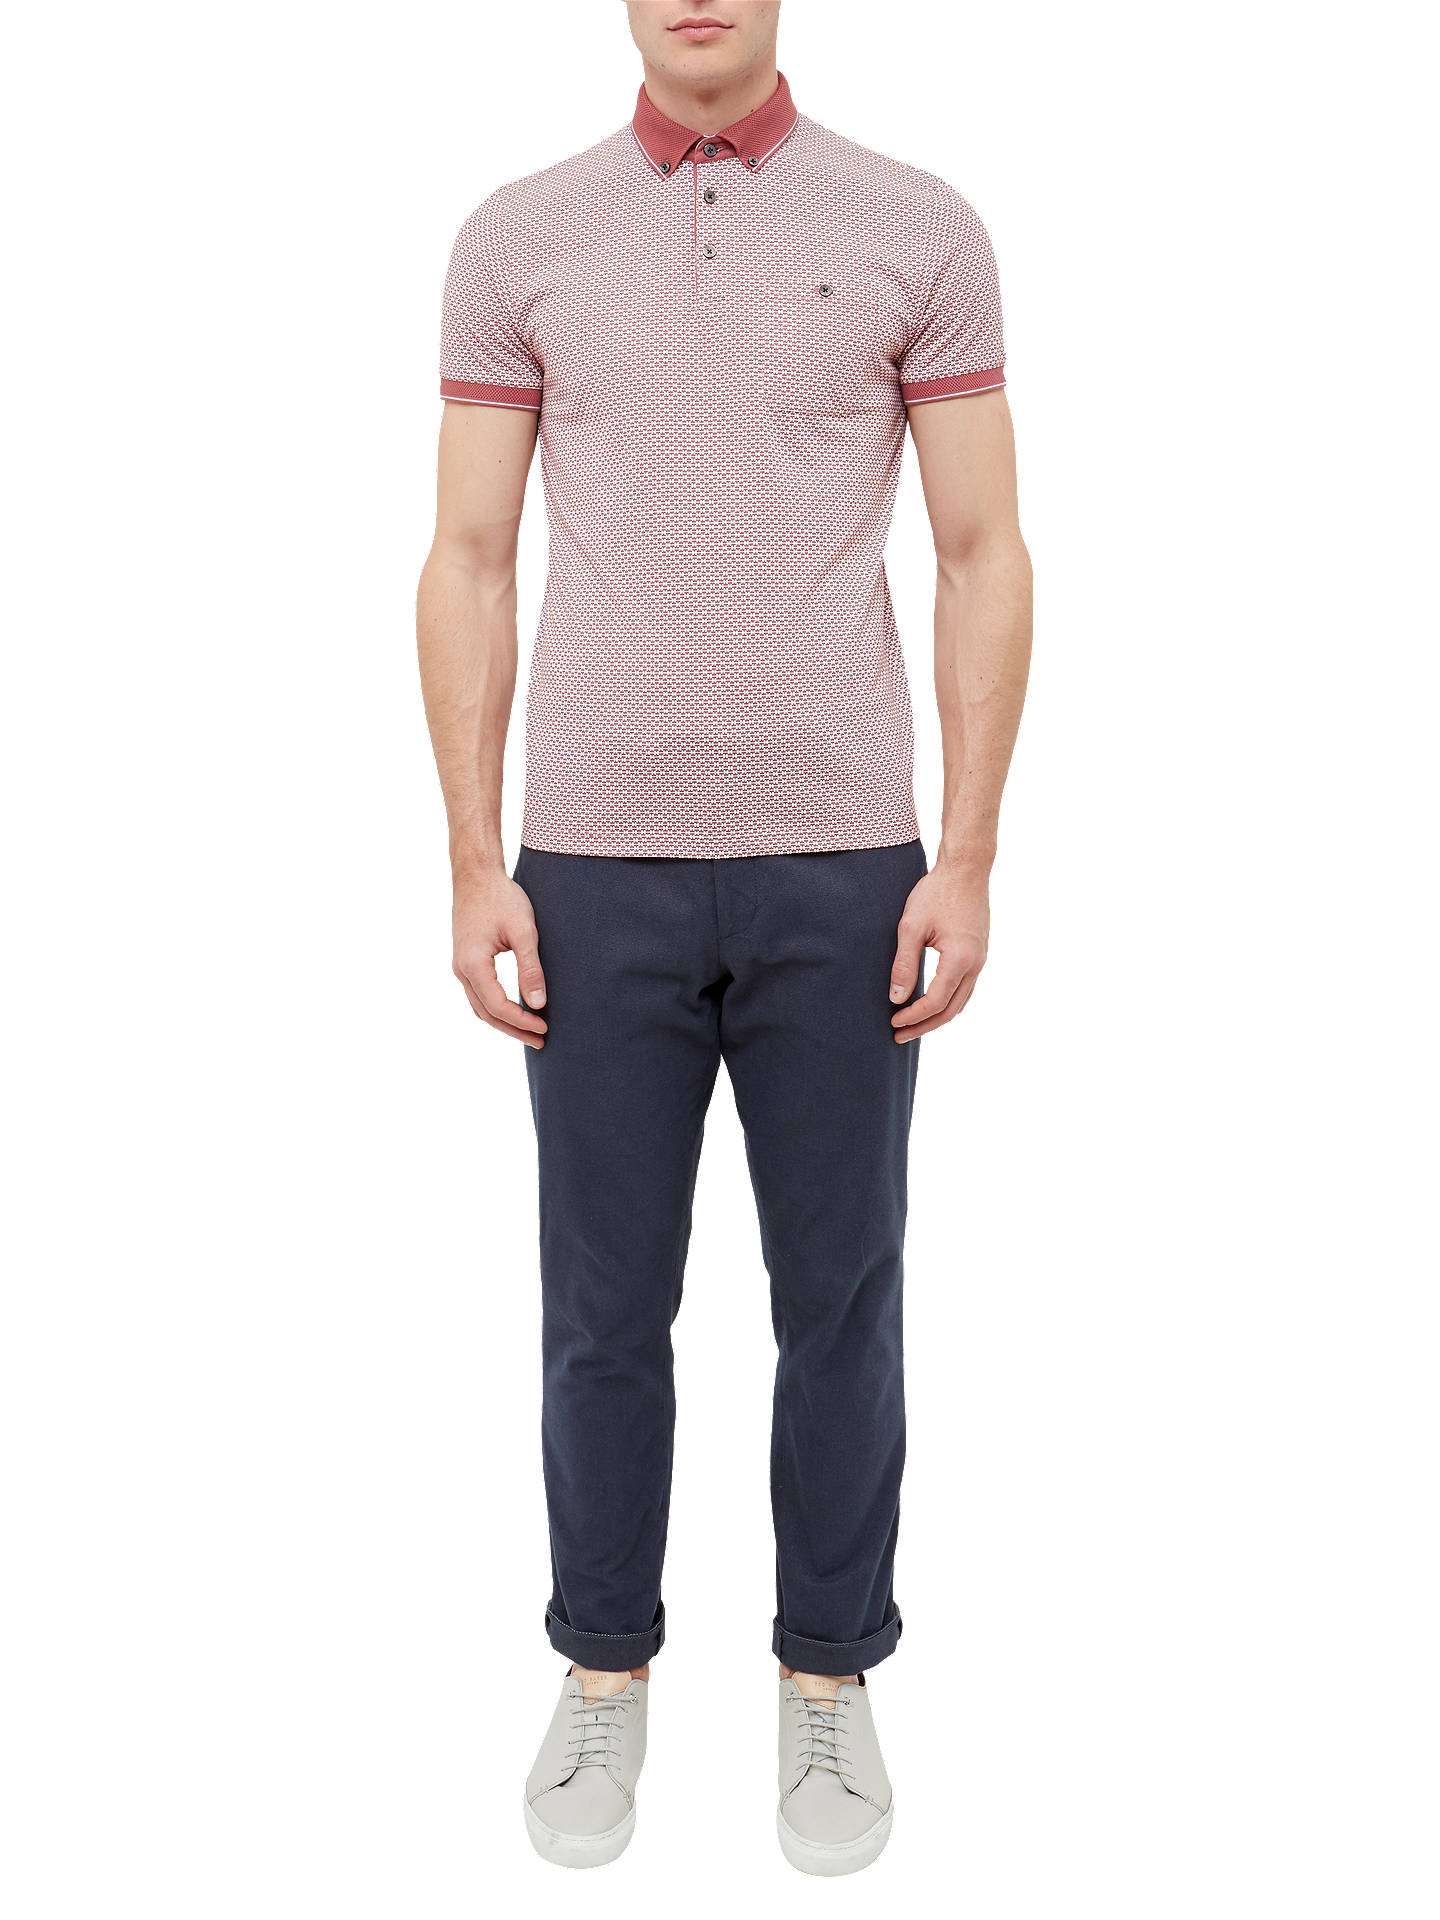 4816700b1 ... Buy Ted Baker Enders Polo Shirt, Mid Pink, 2 Online at johnlewis.com